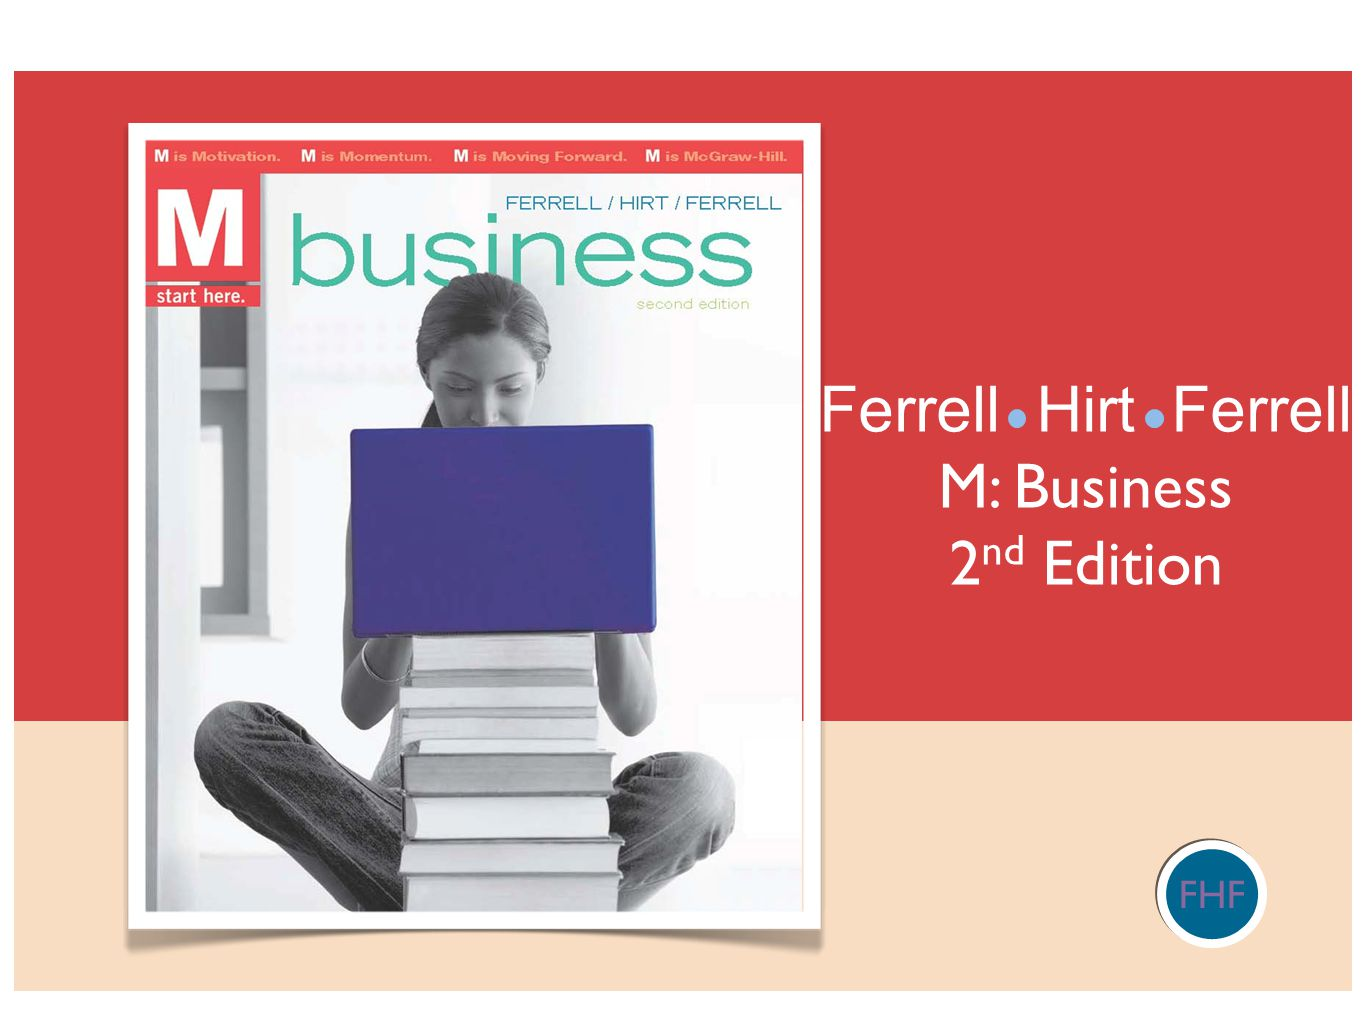 FHF Ferrell Hirt Ferrell M: Business 2 nd Edition